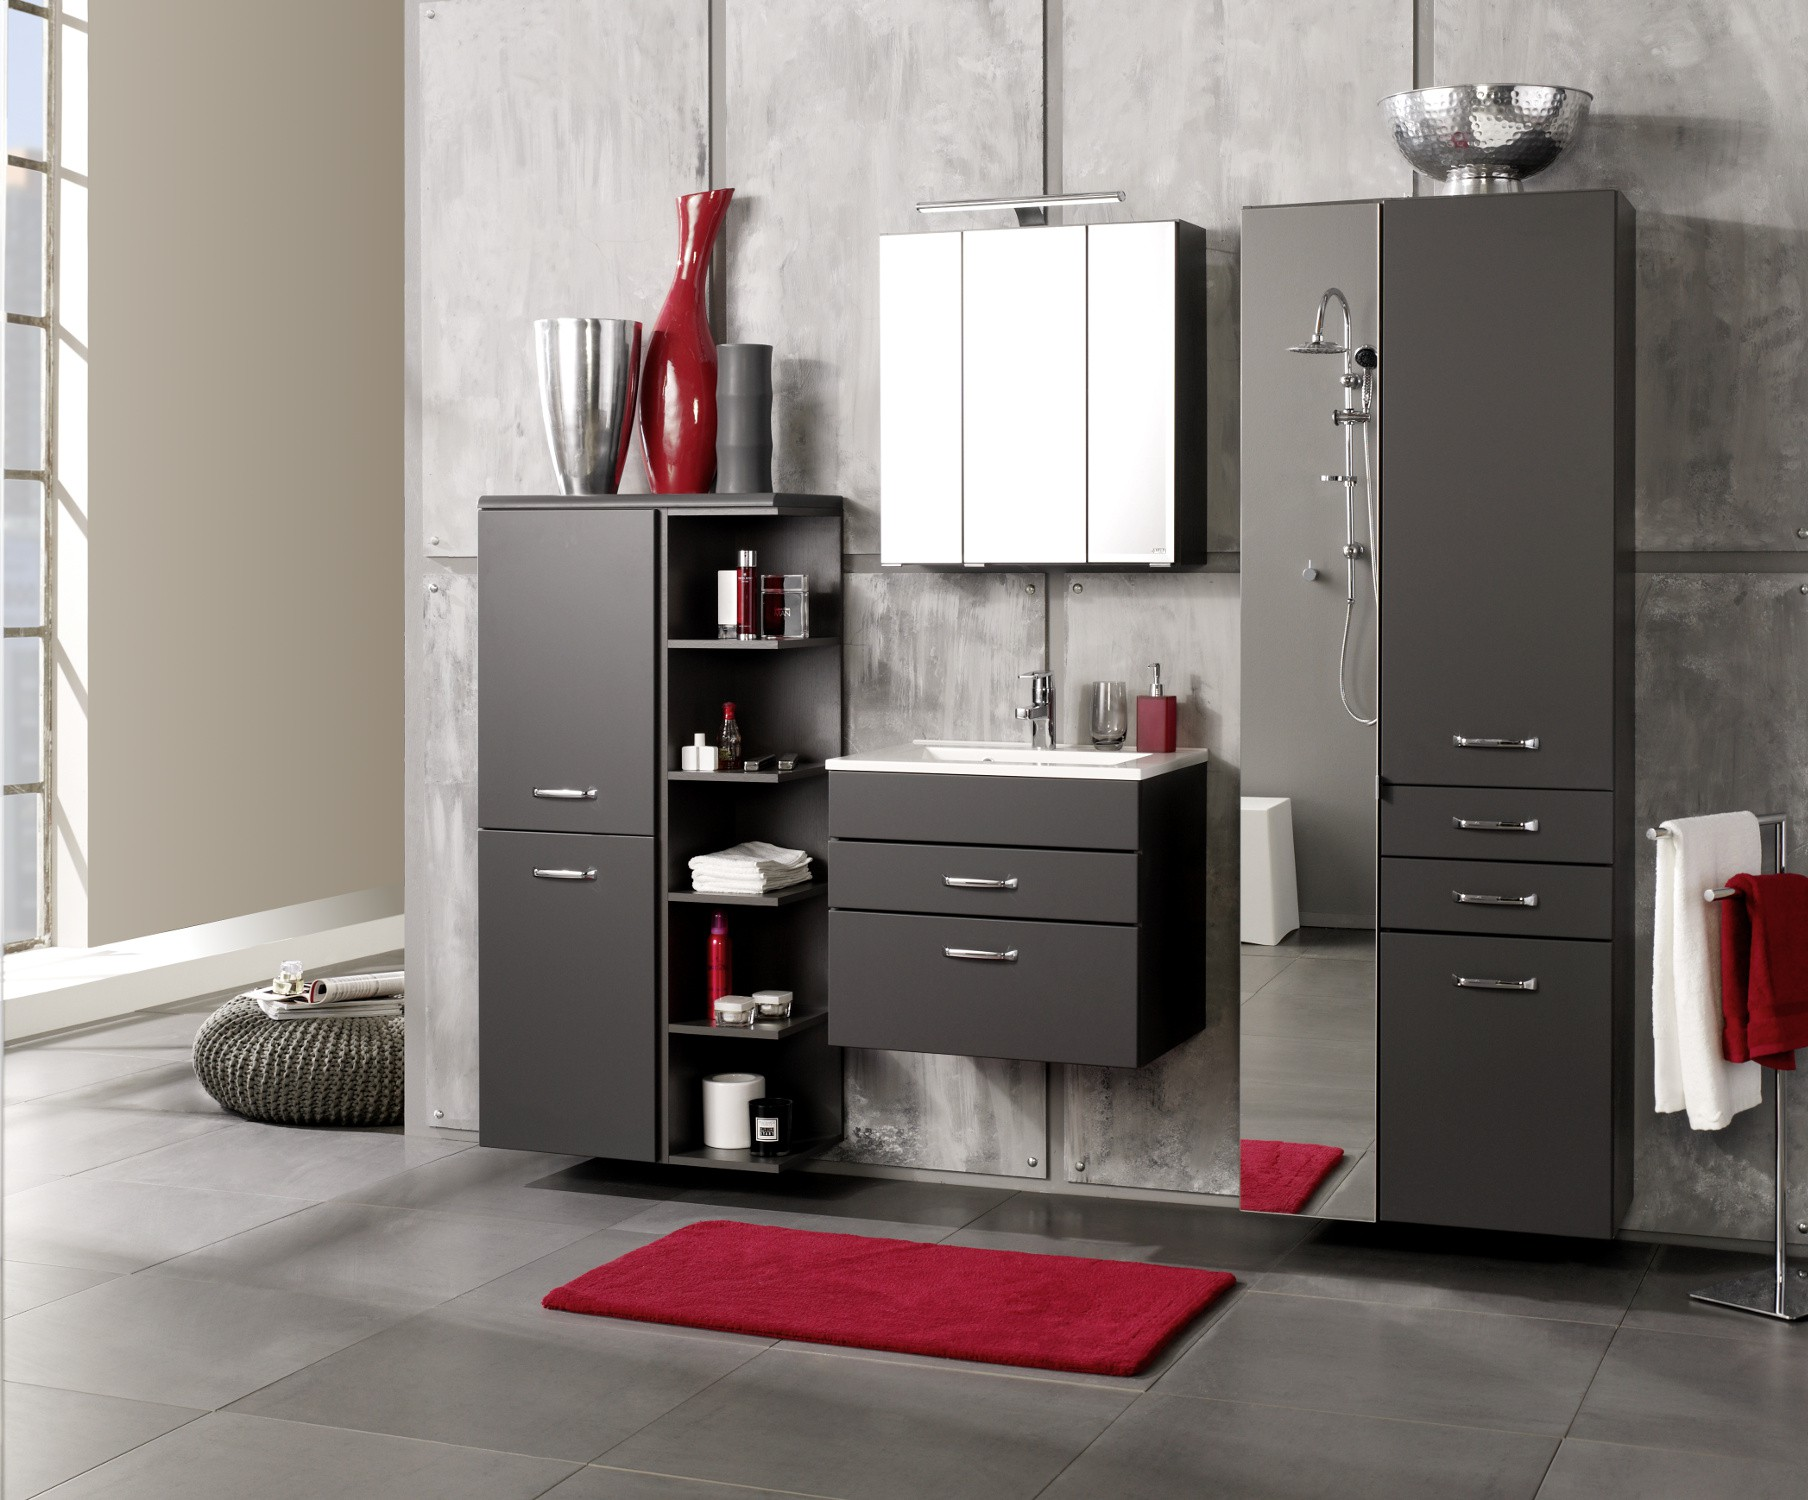 badm bel set fontana mit waschtisch 6 teilig 190 cm. Black Bedroom Furniture Sets. Home Design Ideas